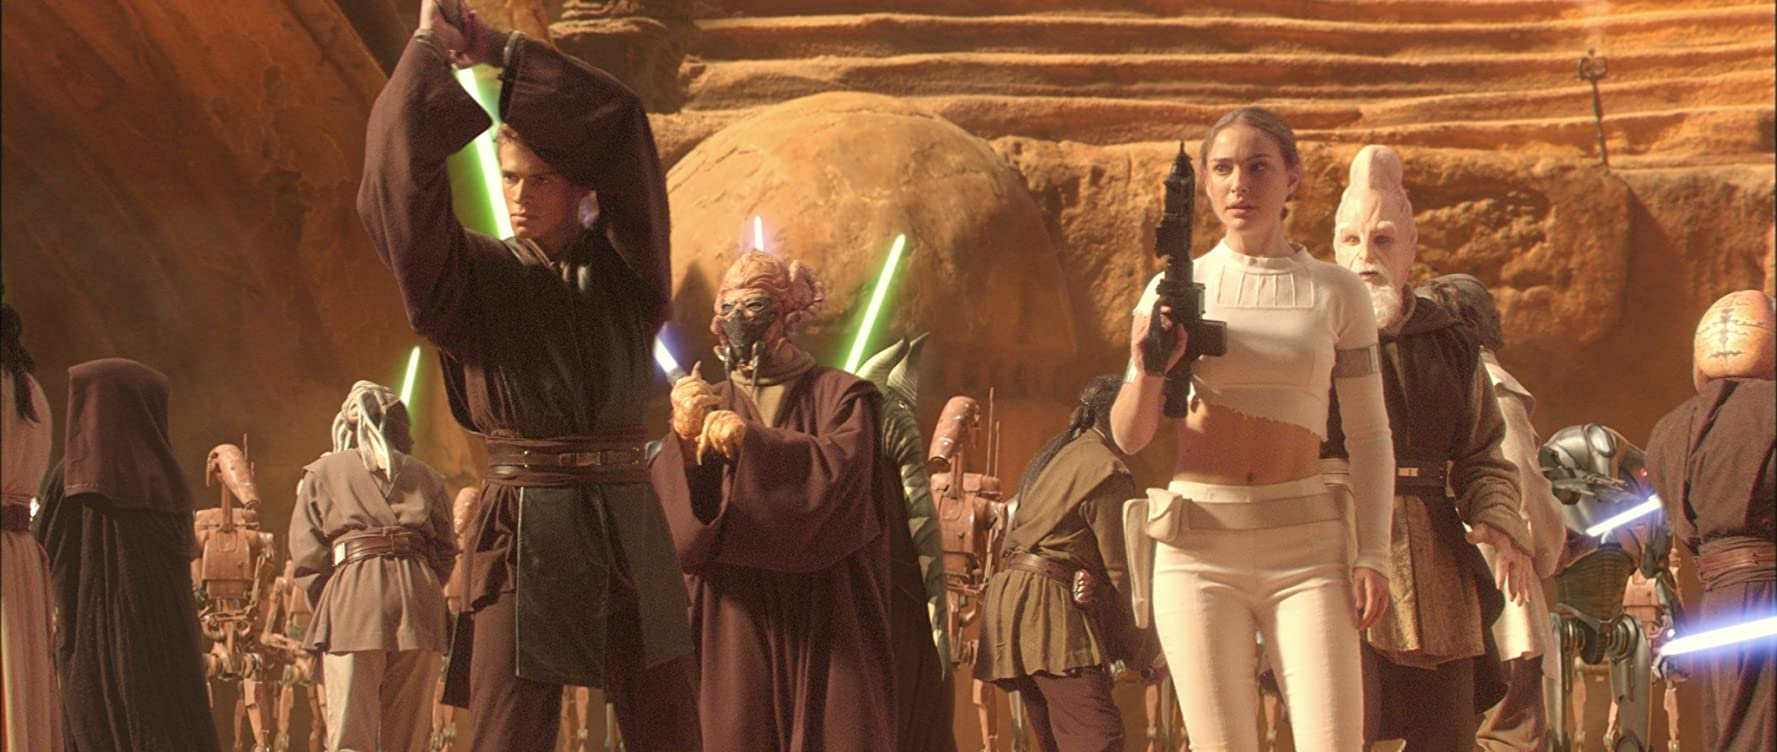 Natalie Portman, Silas Carson, Hayden Christensen, Jesse Jensen, Matt Sloan, Mary Oyaya, Orli Shoshan, and Lily Nyamwasa in Star Wars: Episode II - Attack of the Clones (2002)